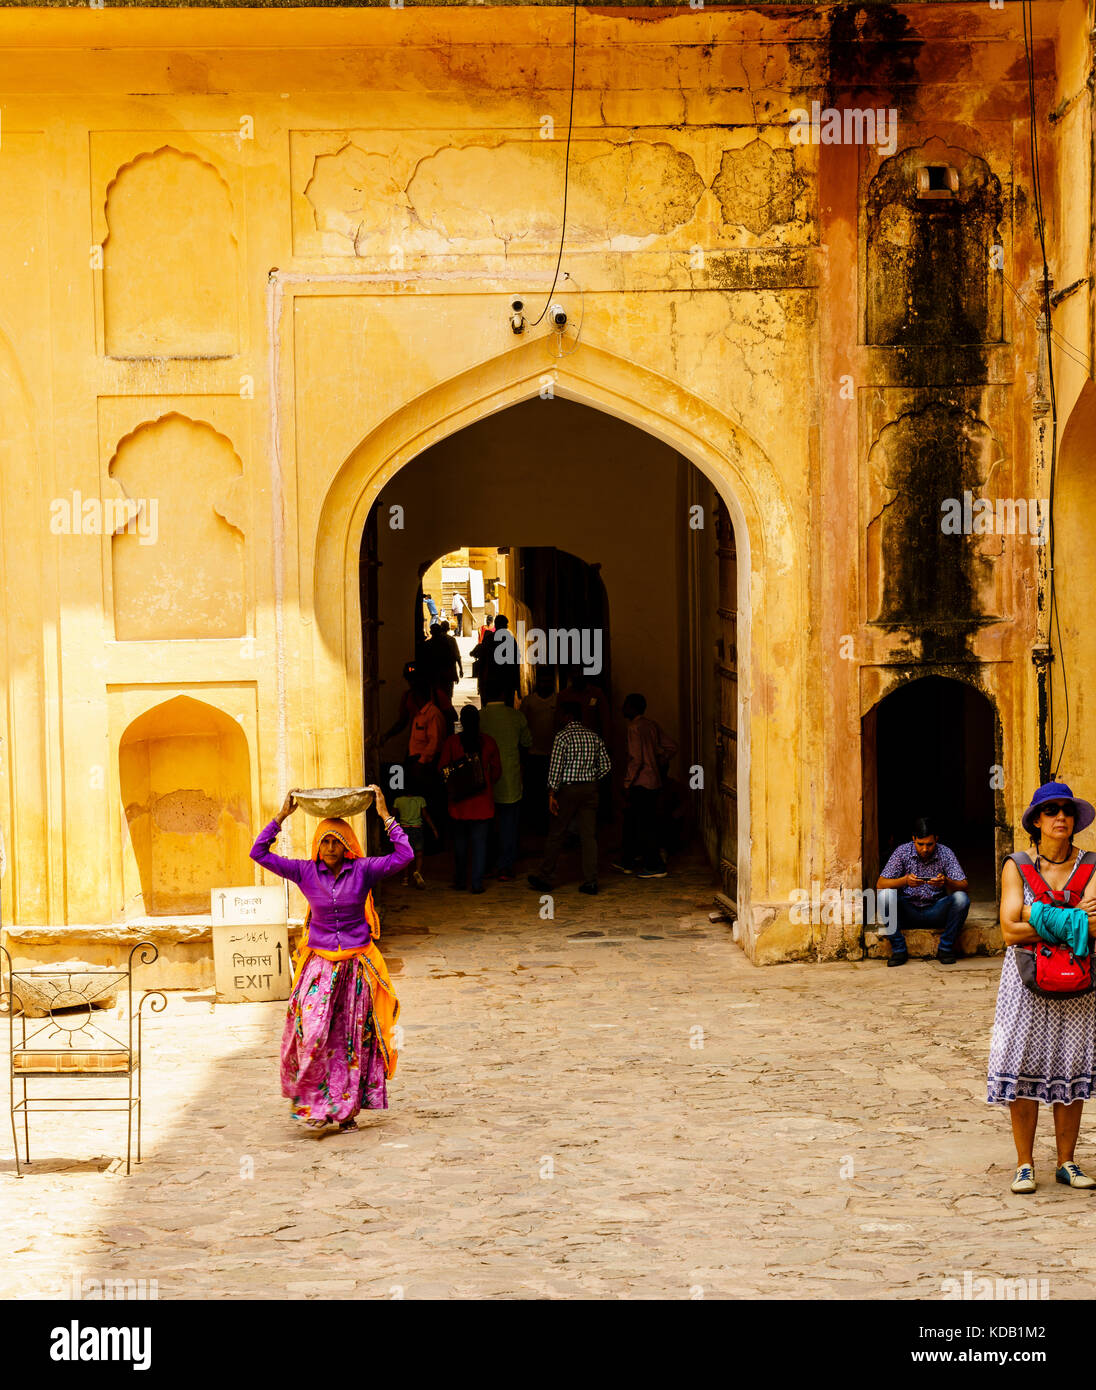 An India woman carrying a pan on her head at a palace building in Jaipur, India - Stock Image